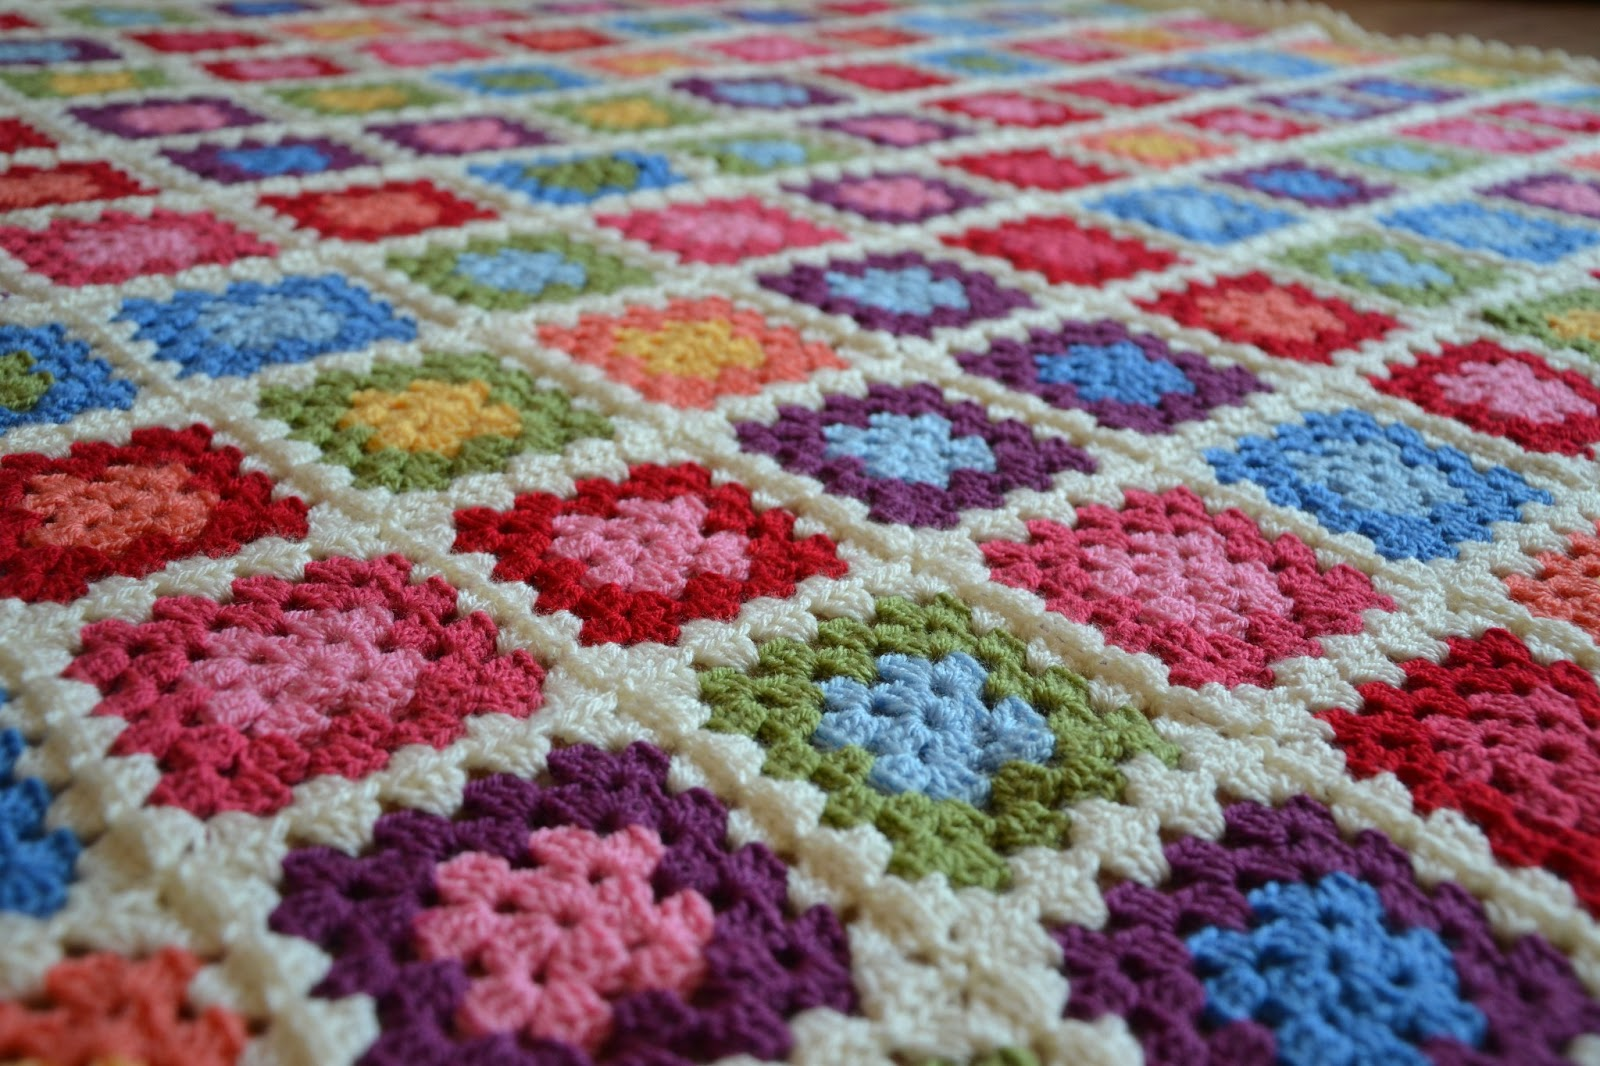 Crocheting Granny Square Blanket : Tadpegs: Crochet Granny Squares Soduku Blanket